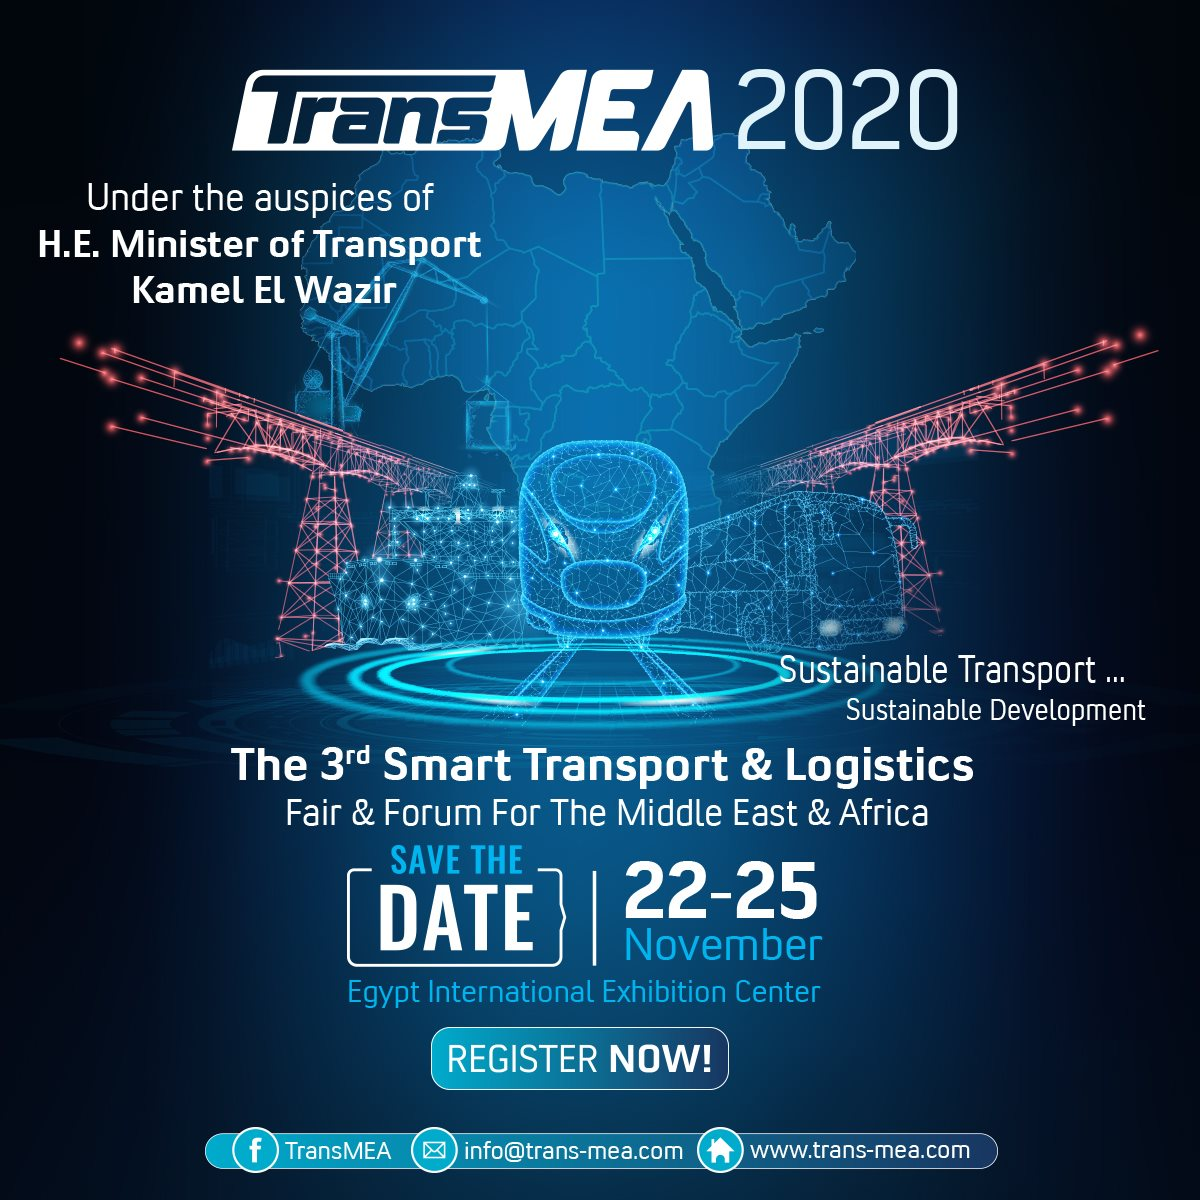 SAVE THE DATE #TransMEA2020 #TransMEA 2020 22 - 25 November 2020  under the auspices of H.E. Minister of Transport Kamel El-Wazir #transport #maritime #aviation #logistics #airports #transportation #ports #shipping https://t.co/4ztIMUEgJA